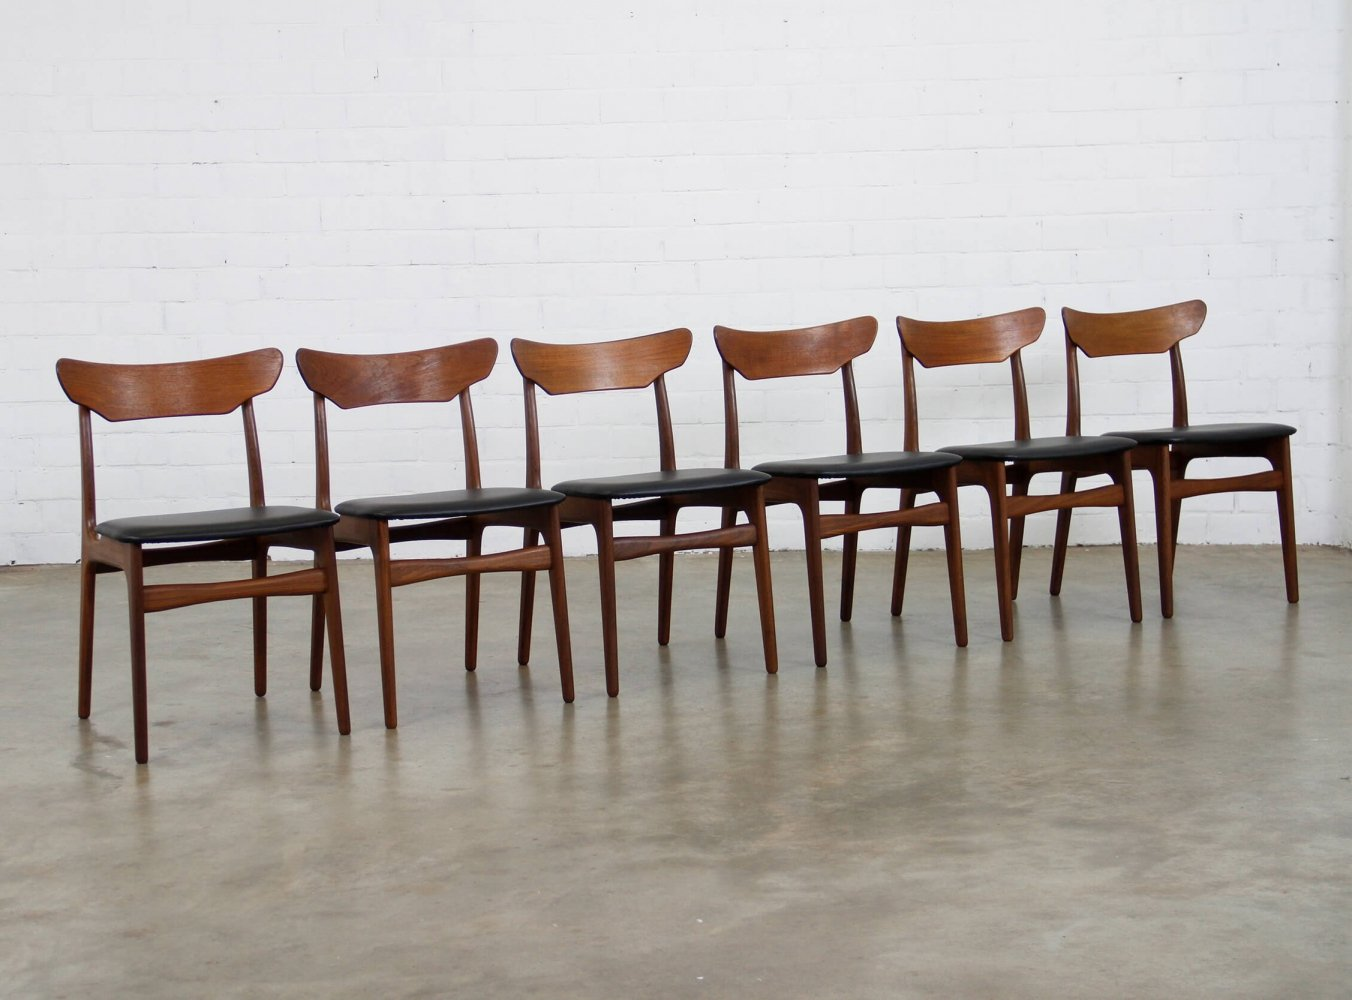 Set of 6 dining chairs by Schiønning & Elgaard for Randers Møbelfabrik, 1960s